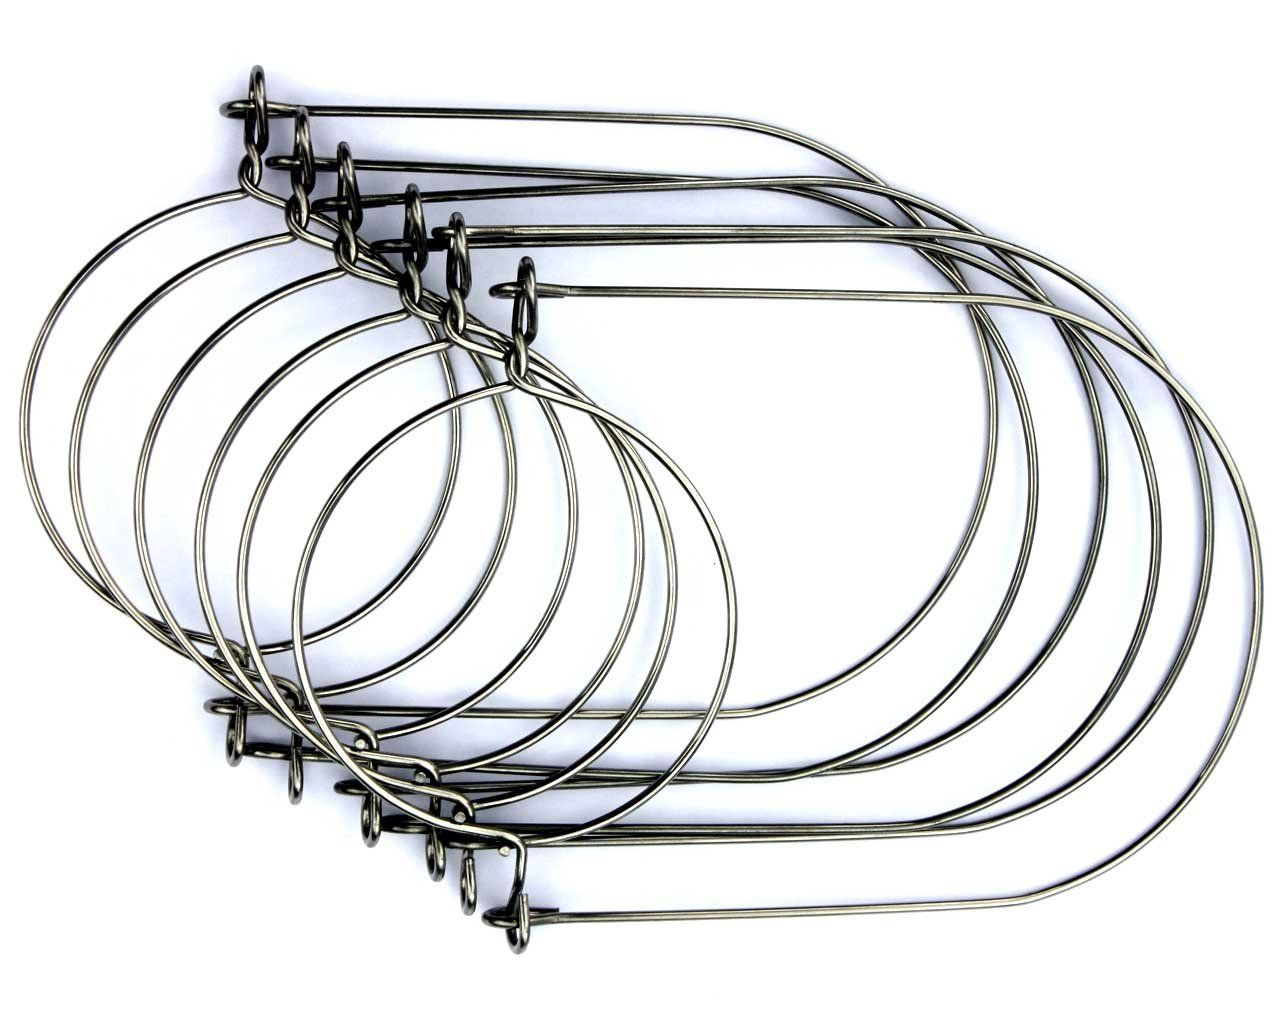 Amazon.com: Stainless Steel Wire Handles for Mason, Ball, Canning Jars (6 Pack, Regular Mouth): Kitchen & Dining